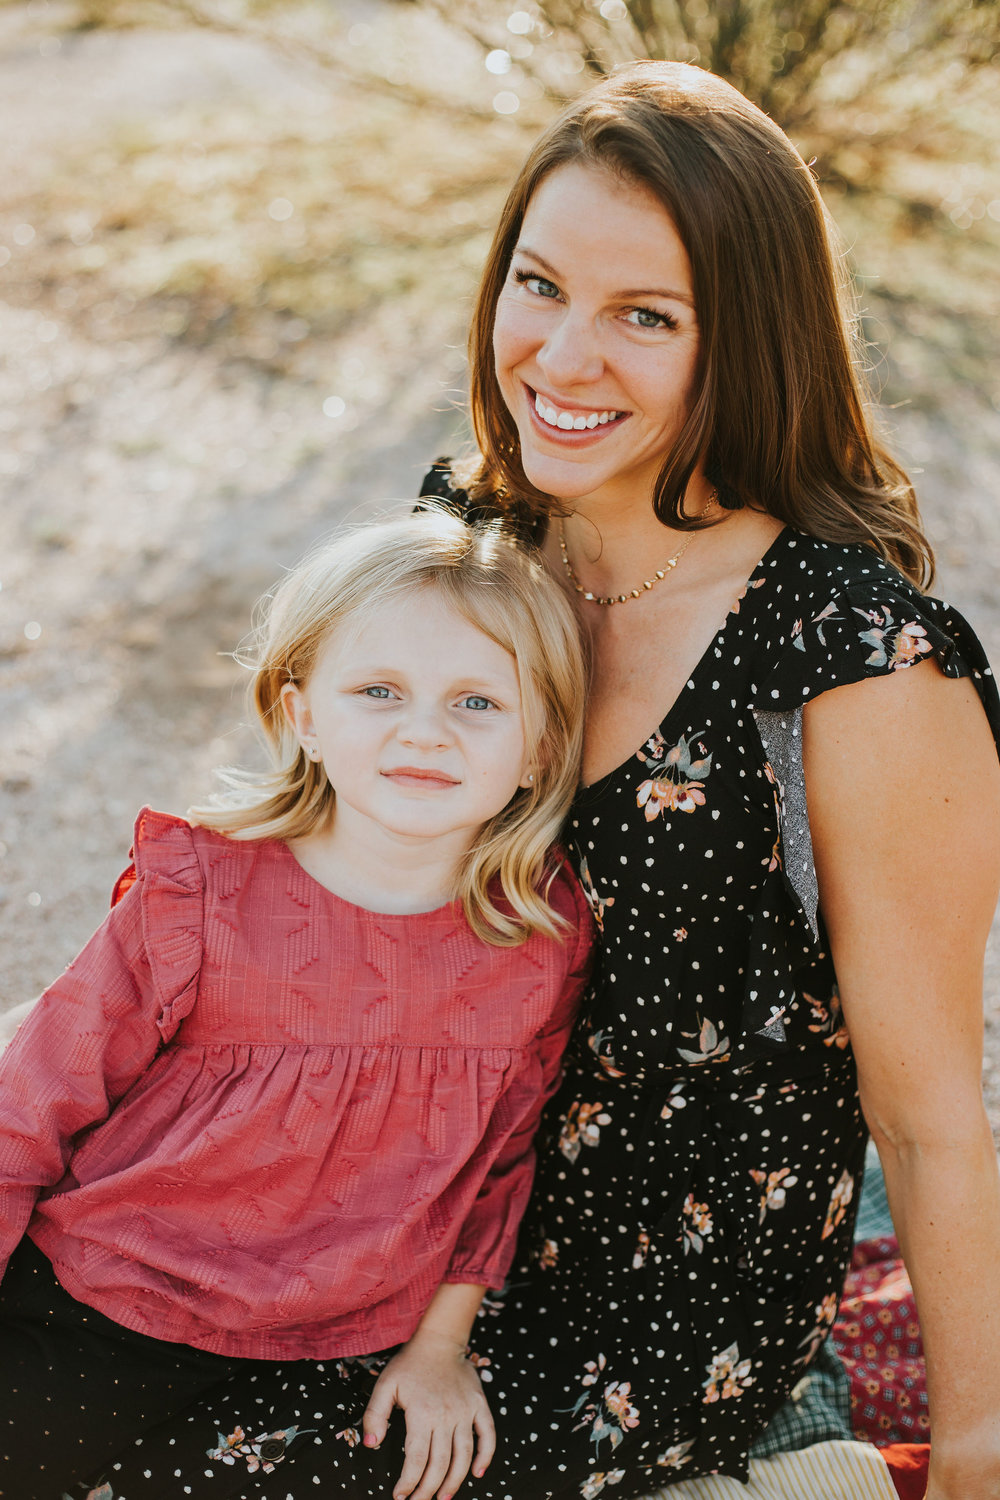 Mother & Daughter portrait | Natural light desert lifestyle family photography session | Lost Dutchman Mesa Arizona